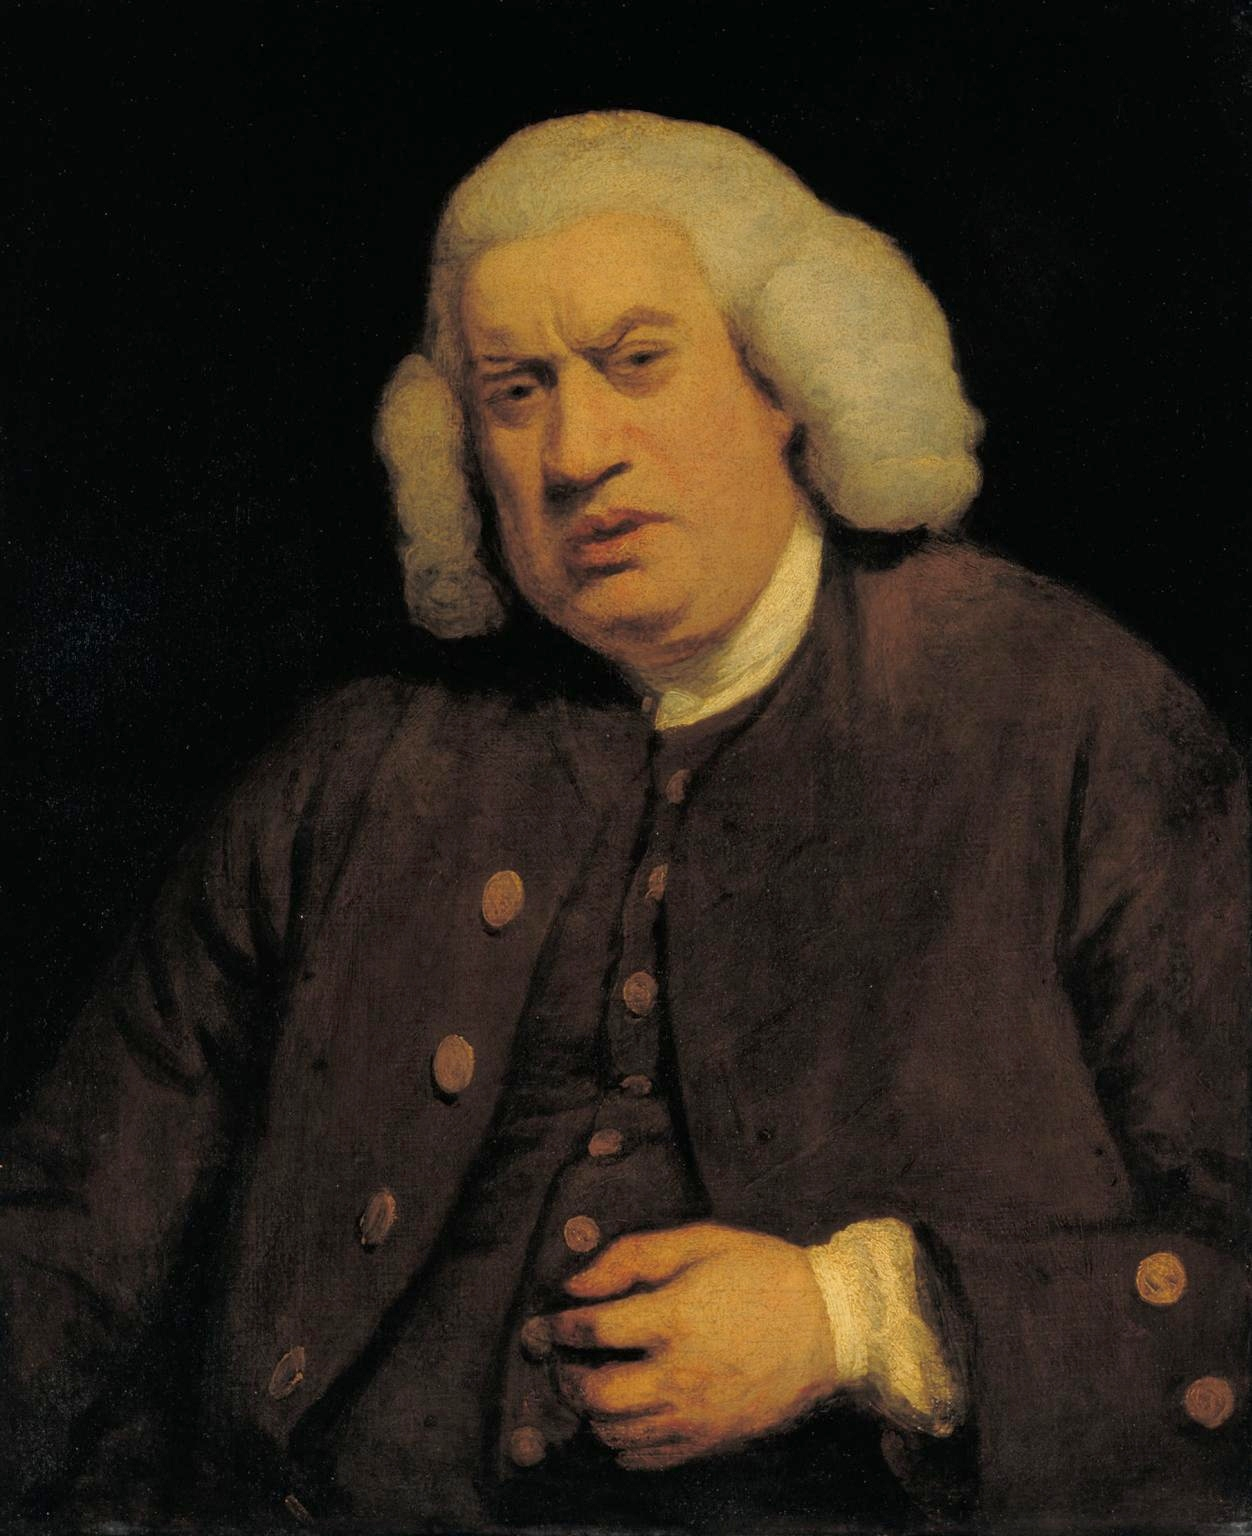 Samuel johnson life of milton summary